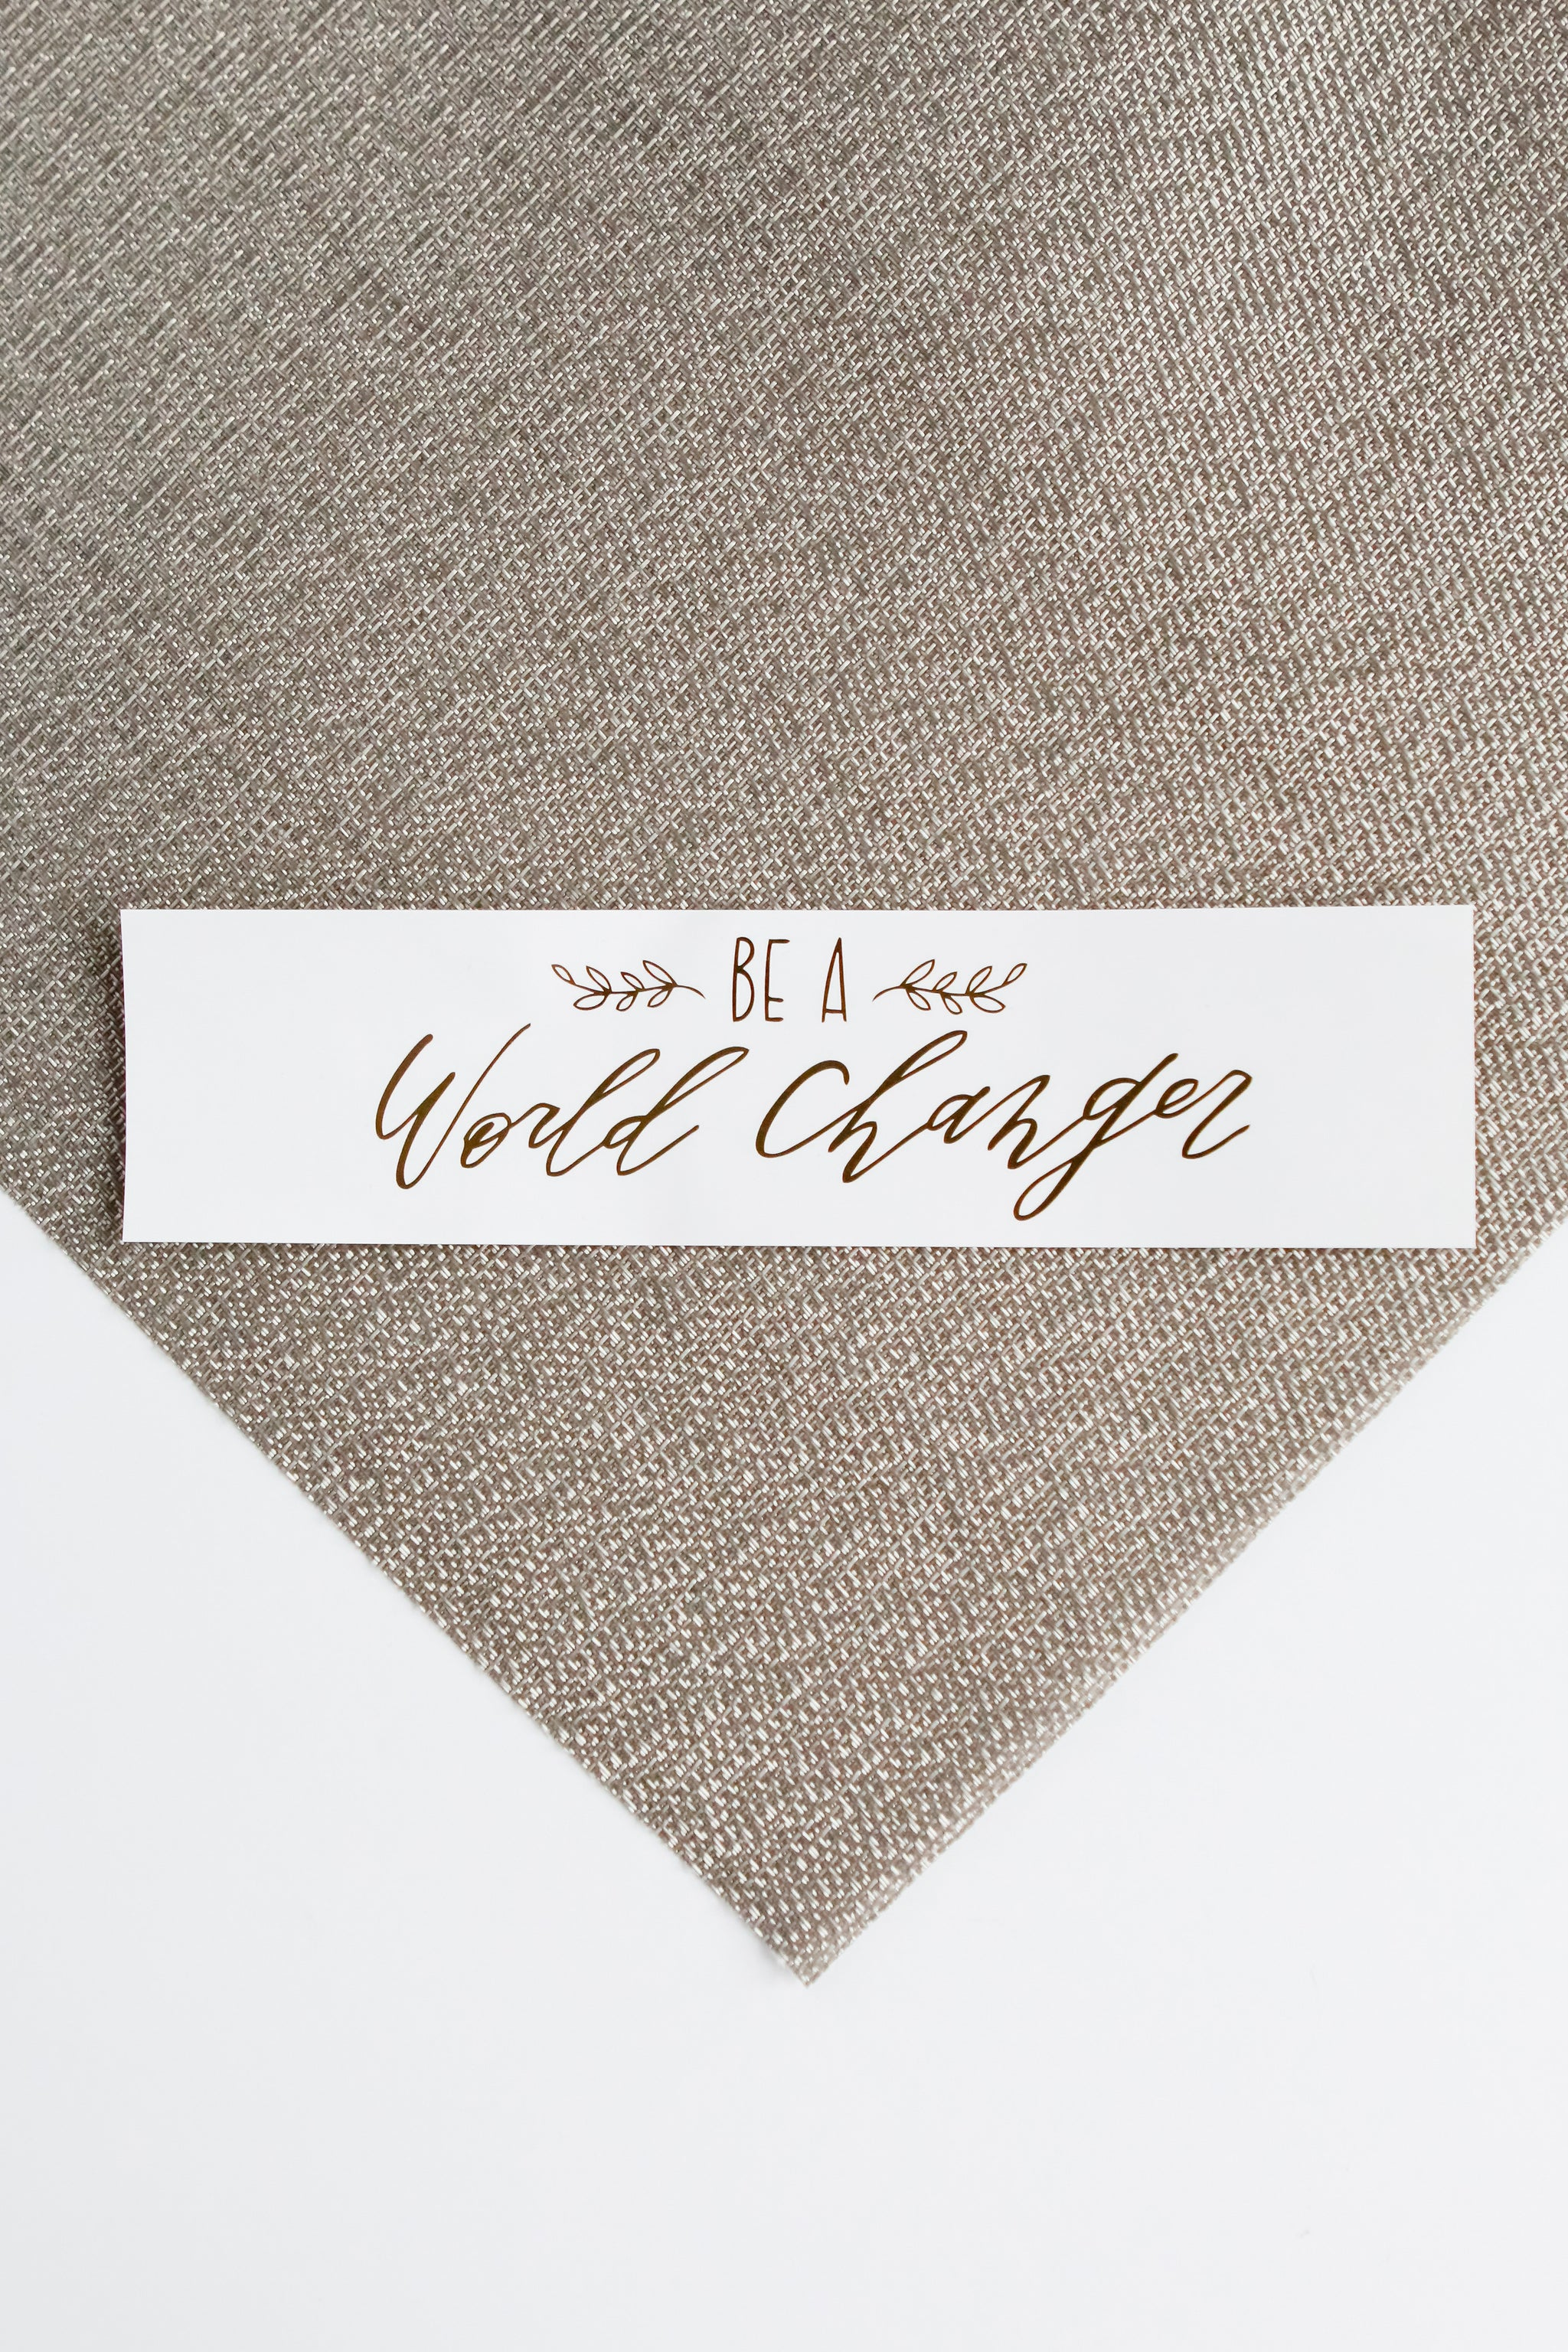 """World Changer"" Sticker sticker - Fair Trade - Mercy House Global"